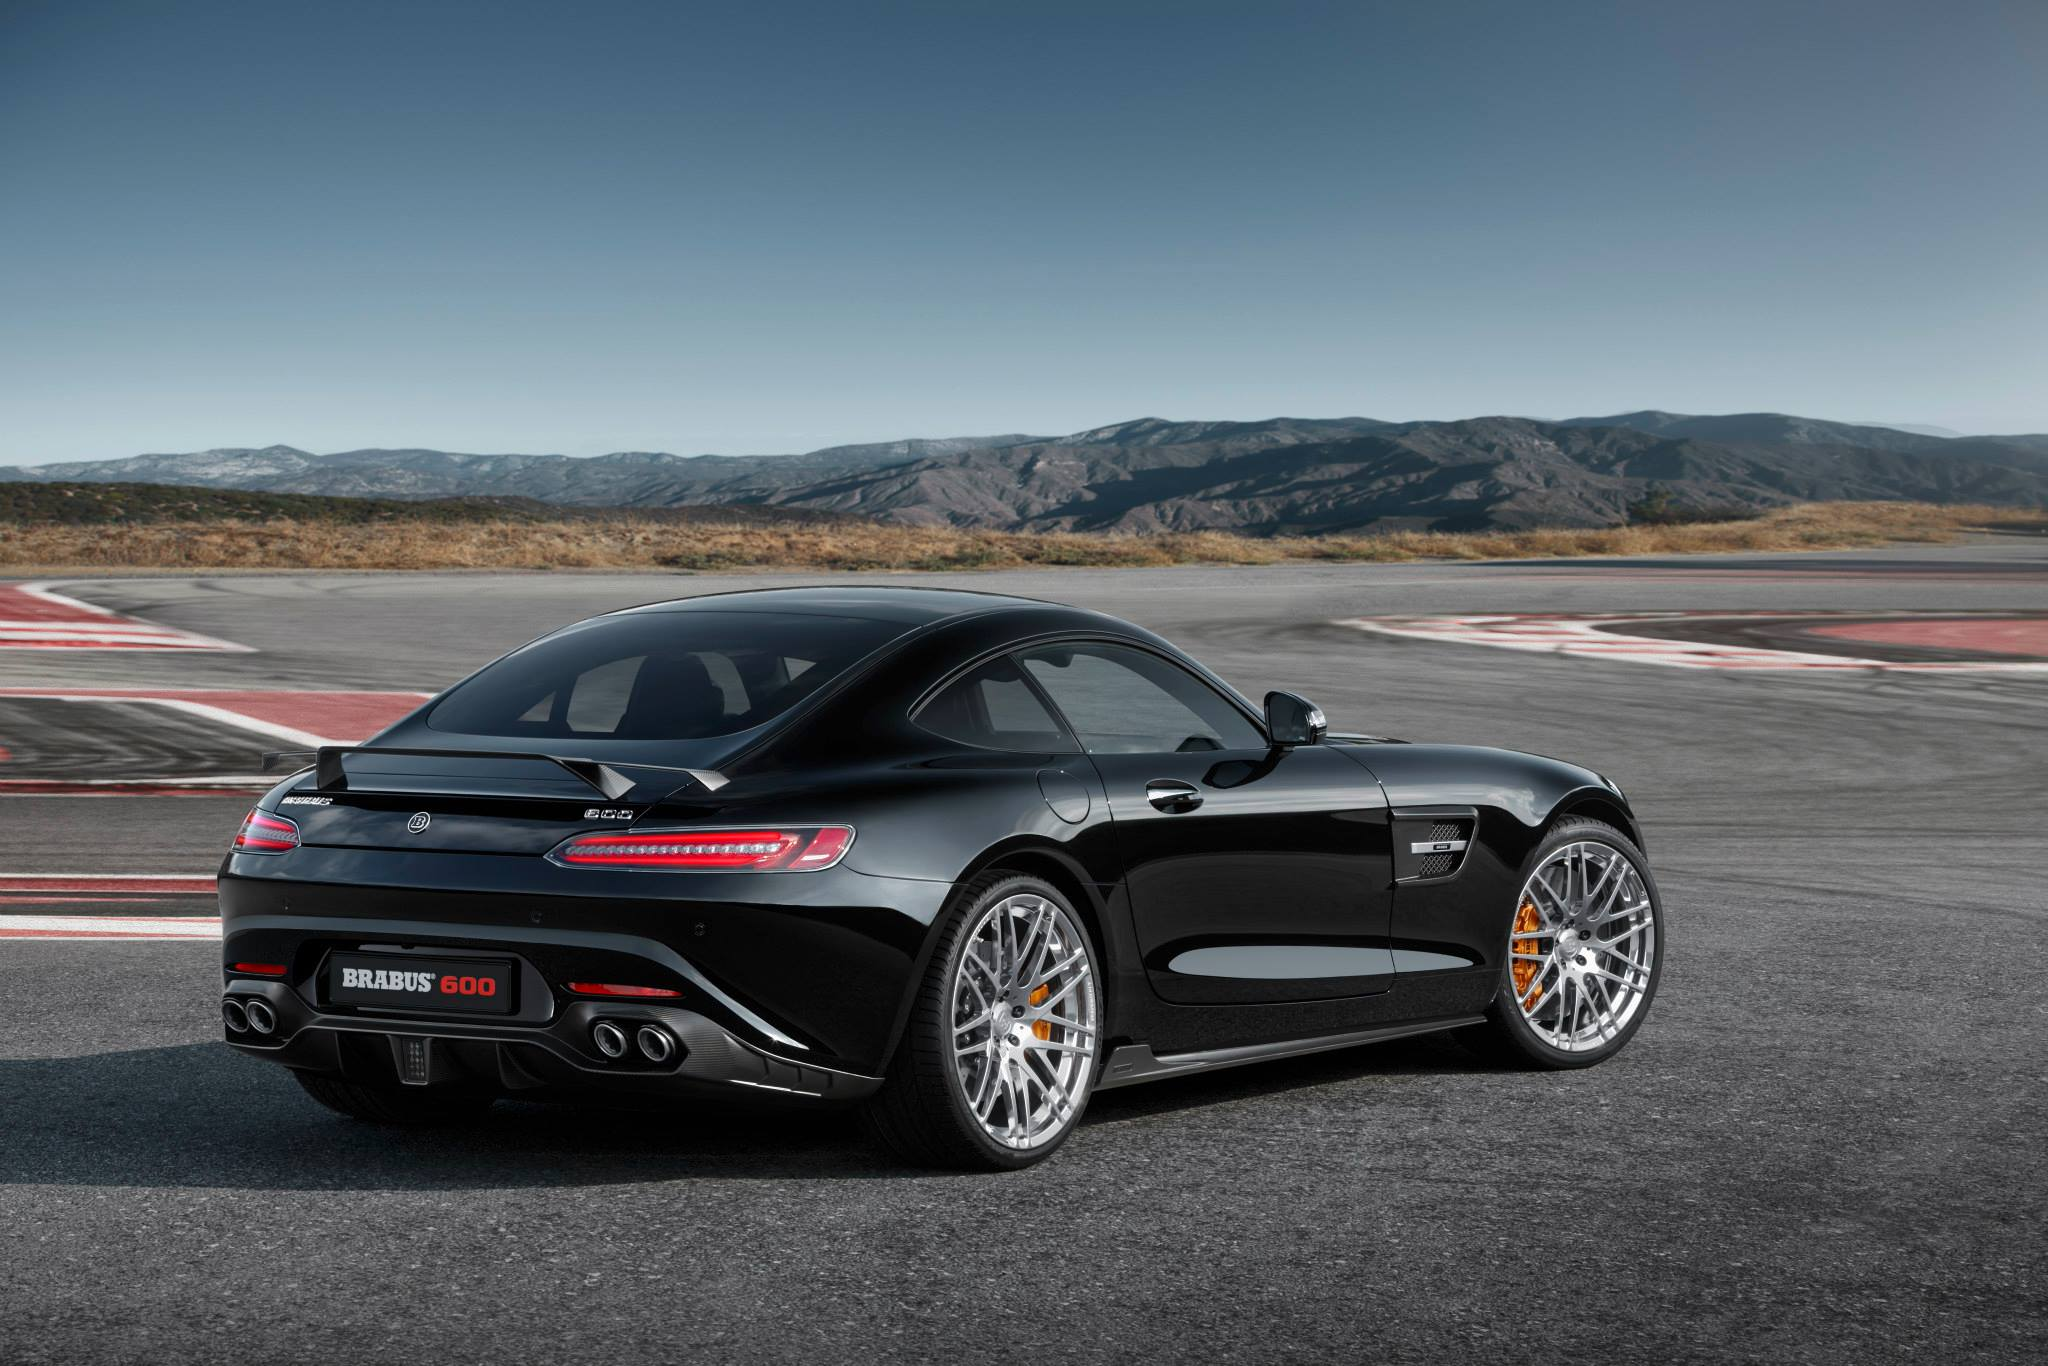 brabus-mercedes-amg-gt-s-tuning-parts-2